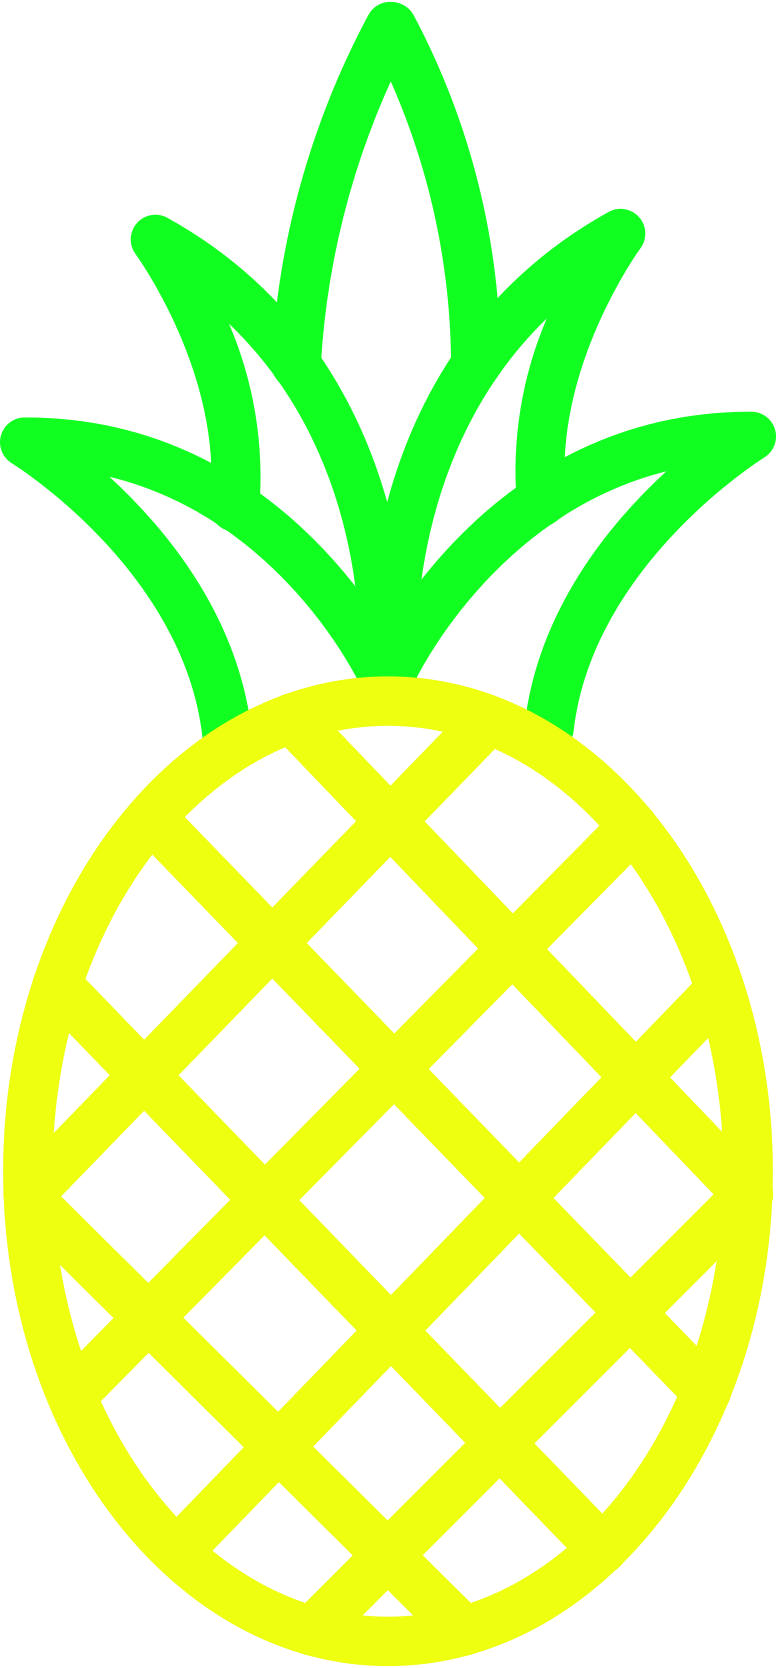 r pineapple Clipart illustration in PNG, SVG